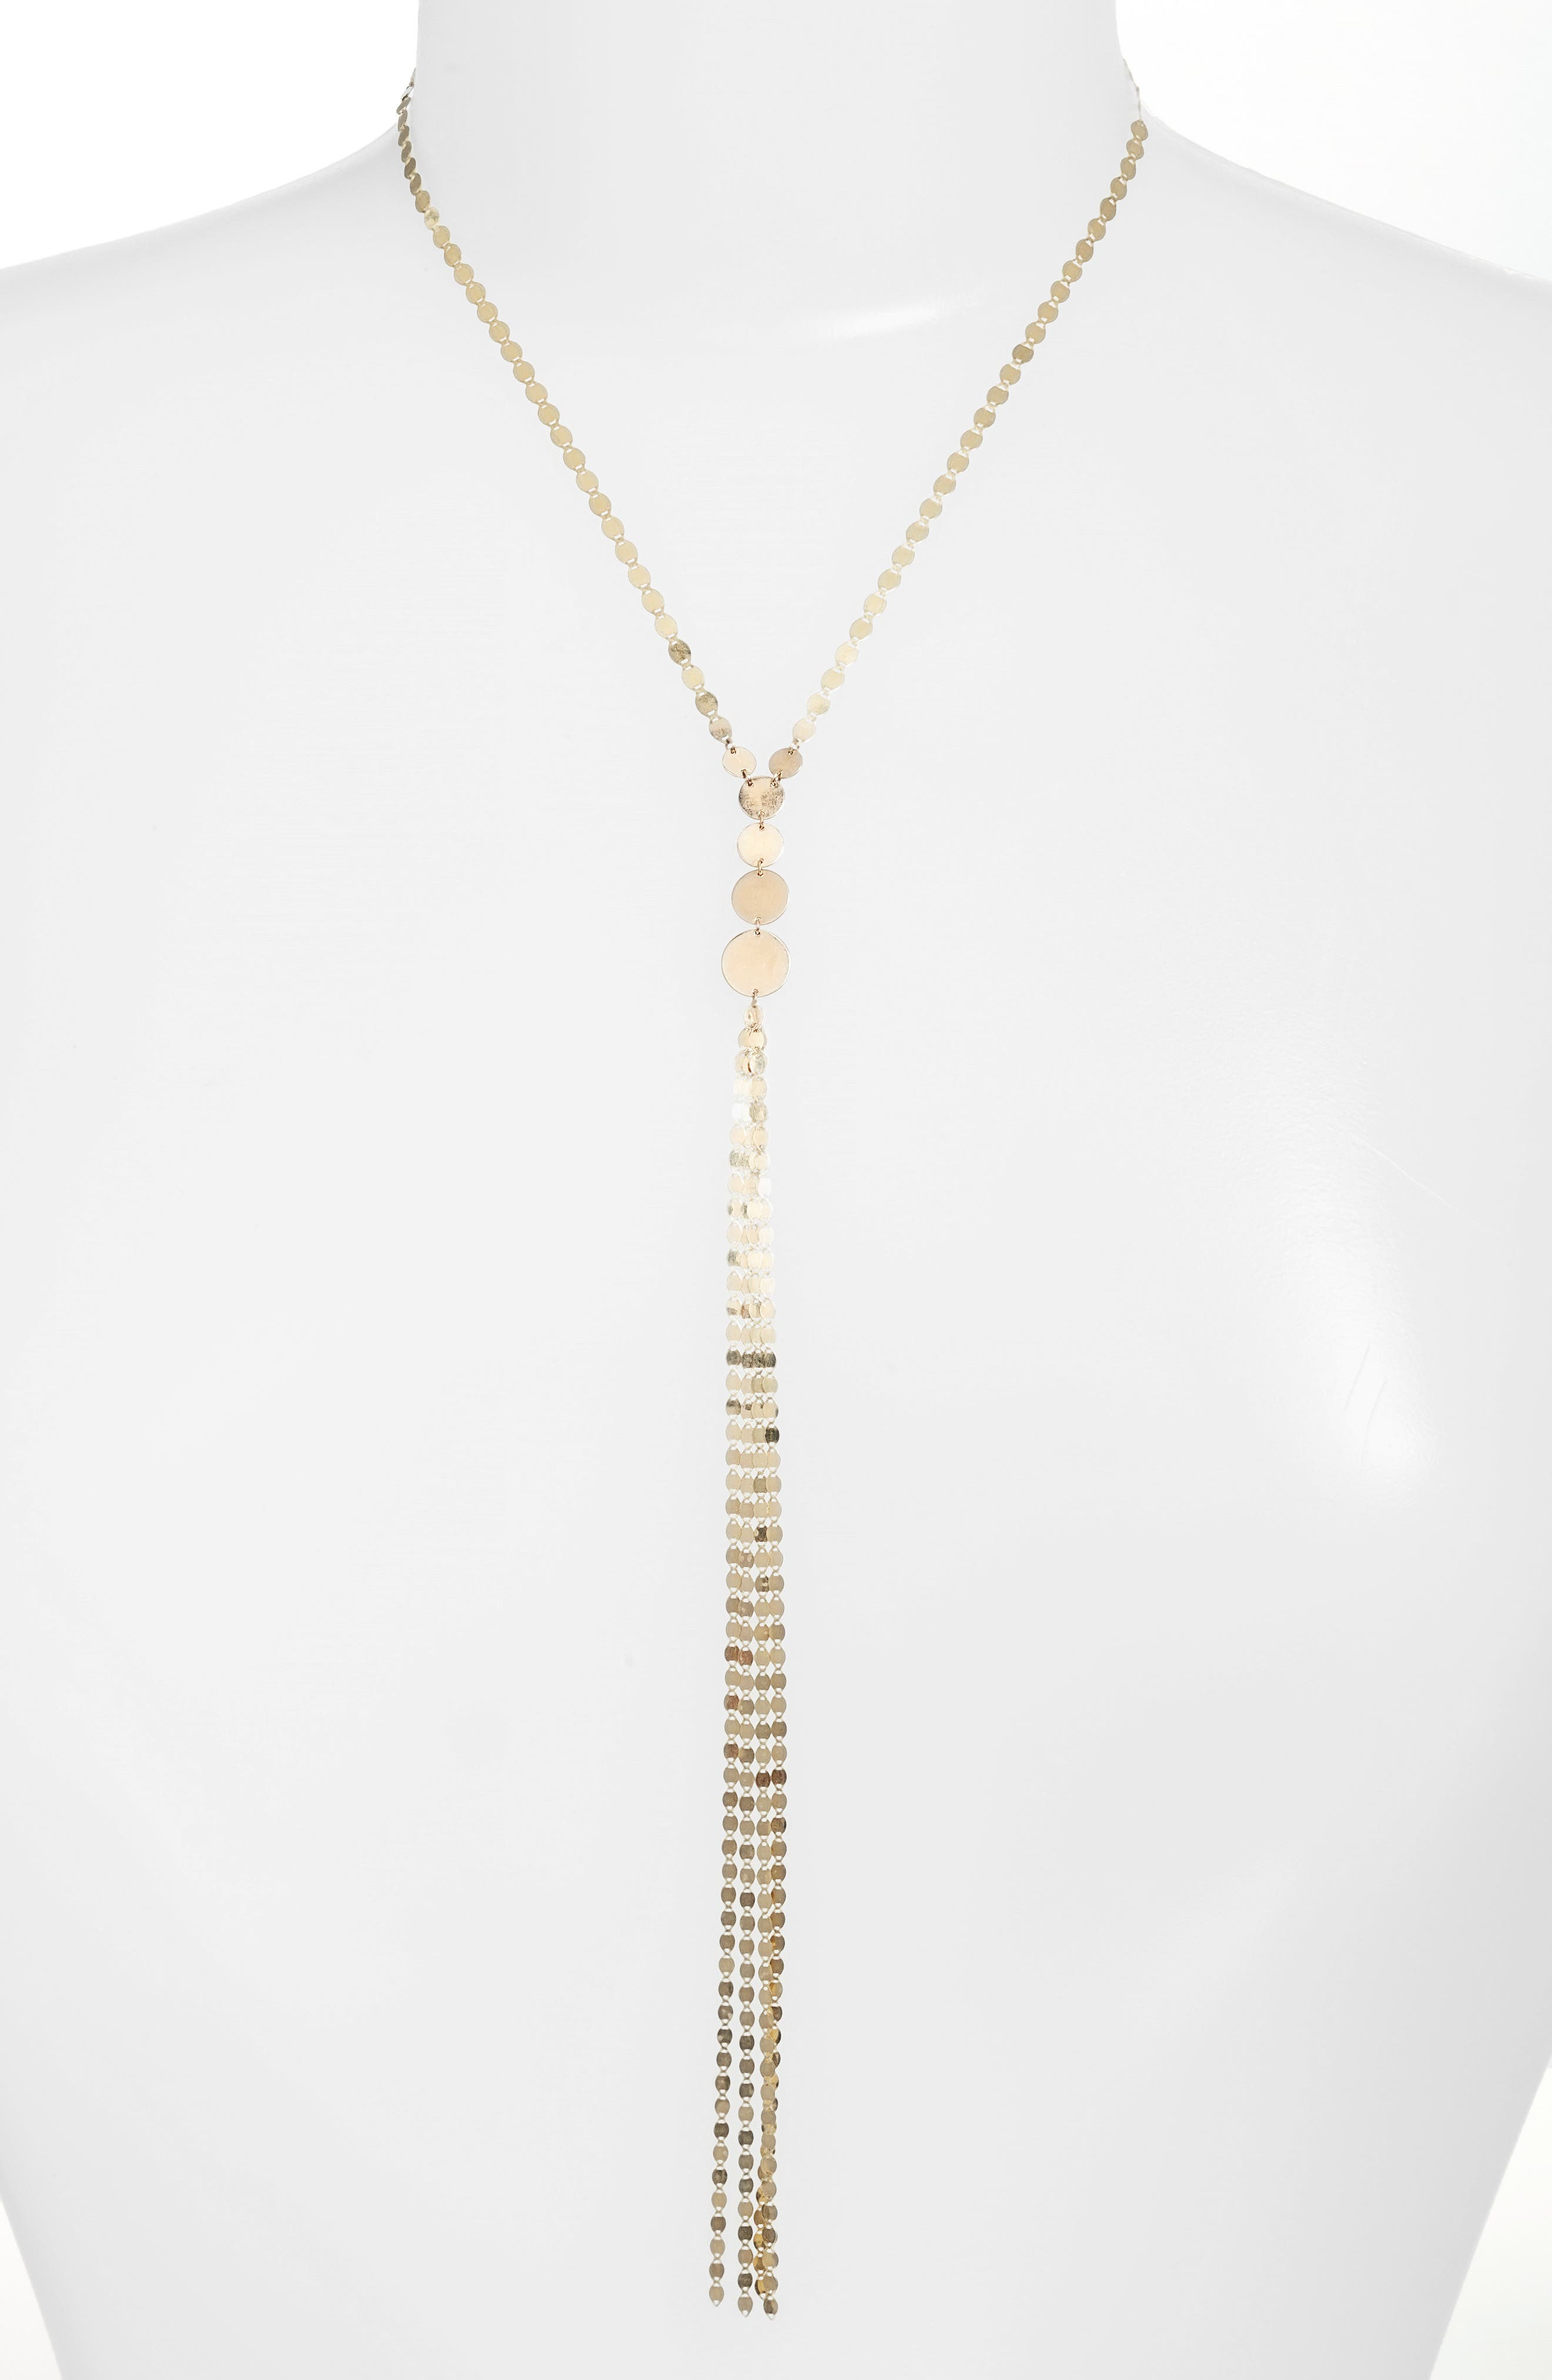 Disc Y-Necklace,                             Main thumbnail 1, color,                             YELLOW GOLD